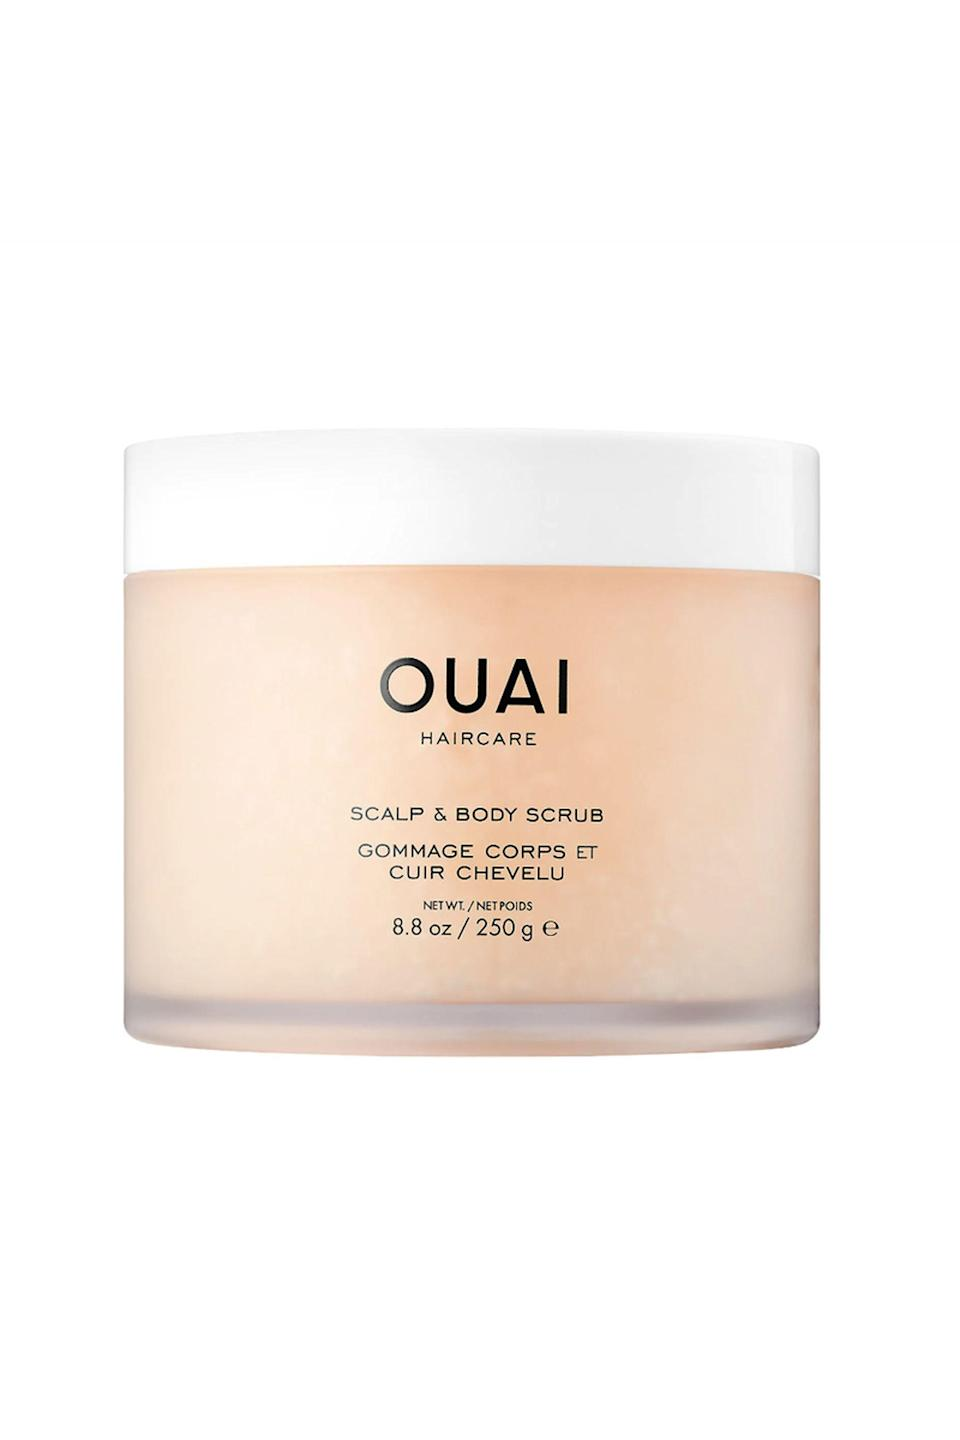 """<p><strong>OUAI</strong></p><p>sephora.com</p><p><strong>$38.00</strong></p><p><a href=""""https://go.redirectingat.com?id=74968X1596630&url=https%3A%2F%2Fwww.sephora.com%2Fproduct%2Fscalp-body-scrub-P434221&sref=https%3A%2F%2Fwww.cosmopolitan.com%2Fstyle-beauty%2Fbeauty%2Fg26114920%2Fbest-scalp-scrubs%2F"""" rel=""""nofollow noopener"""" target=""""_blank"""" data-ylk=""""slk:Shop Now"""" class=""""link rapid-noclick-resp"""">Shop Now</a></p><p><a href=""""https://www.cosmopolitan.com/style-beauty/beauty/g28829338/best-shampoo-for-fine-hair/"""" rel=""""nofollow noopener"""" target=""""_blank"""" data-ylk=""""slk:Fine hair"""" class=""""link rapid-noclick-resp"""">Fine hair</a> compiles product buildup more quickly than other textures, so you want to <strong>opt for a scalp scrub with grittier exfoliants,</strong> like this sugar-based one. It's filled with coconut oil to ease dryness and also has a slight lather that helps you massage it through your roots. The biggest bonus? You can use it on your body, too.<br></p>"""